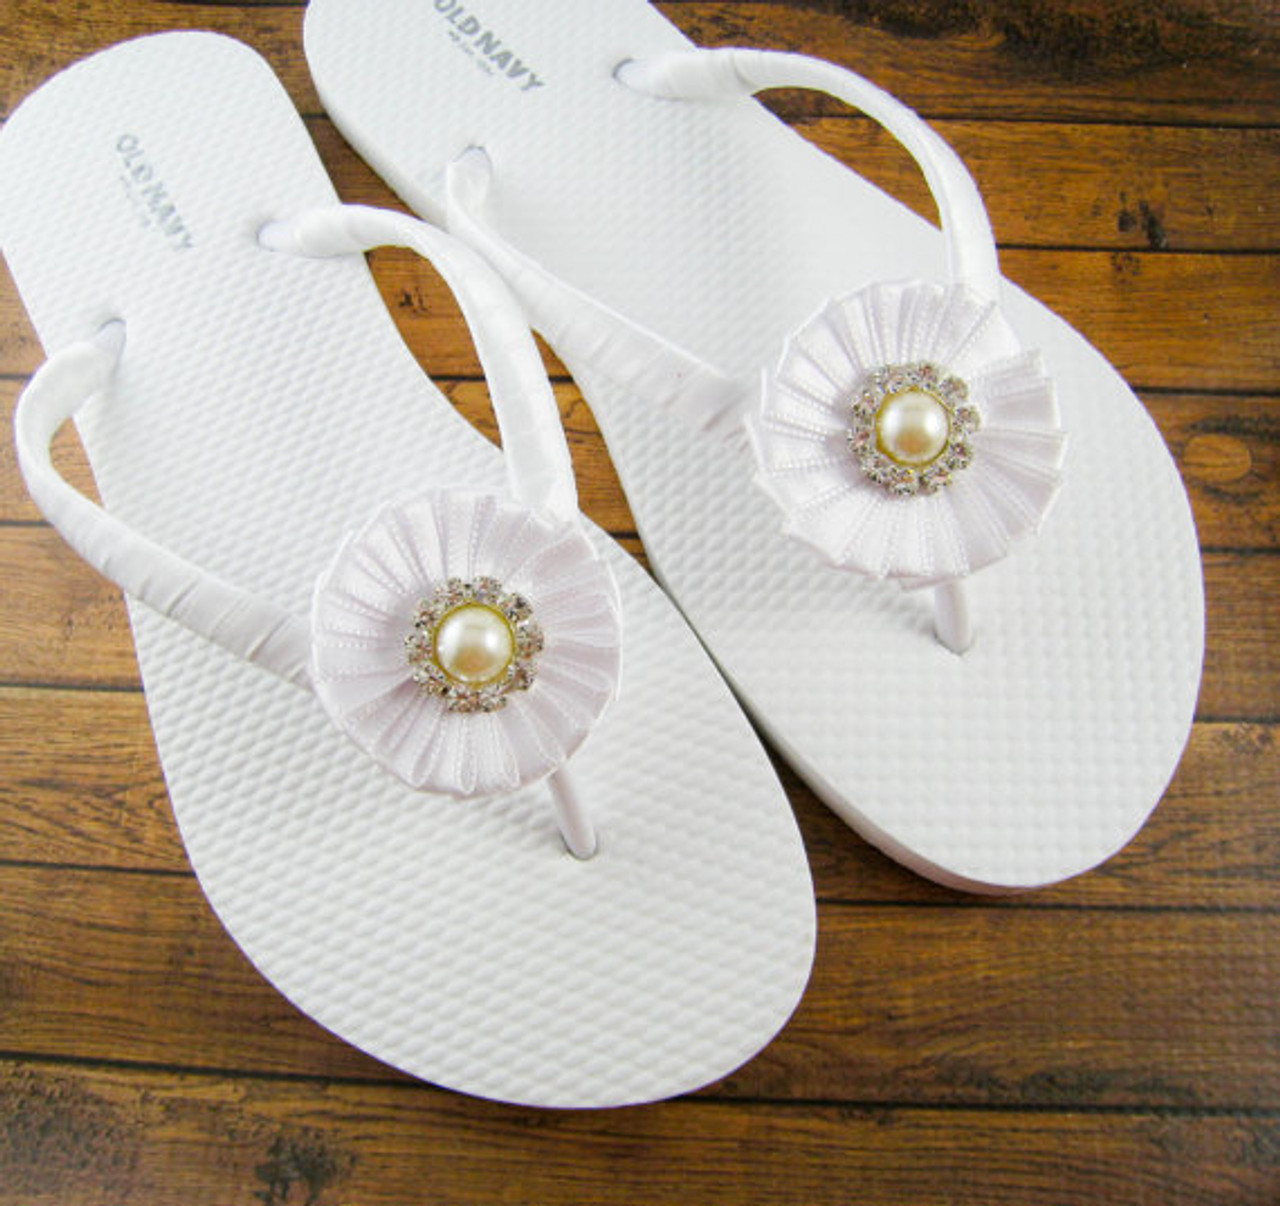 Bridal Flip Flops - White and off white / Wedding Flip Flops / Bridesmaid , Bridal Shower, Flower Girl, Birthday Party, Favor